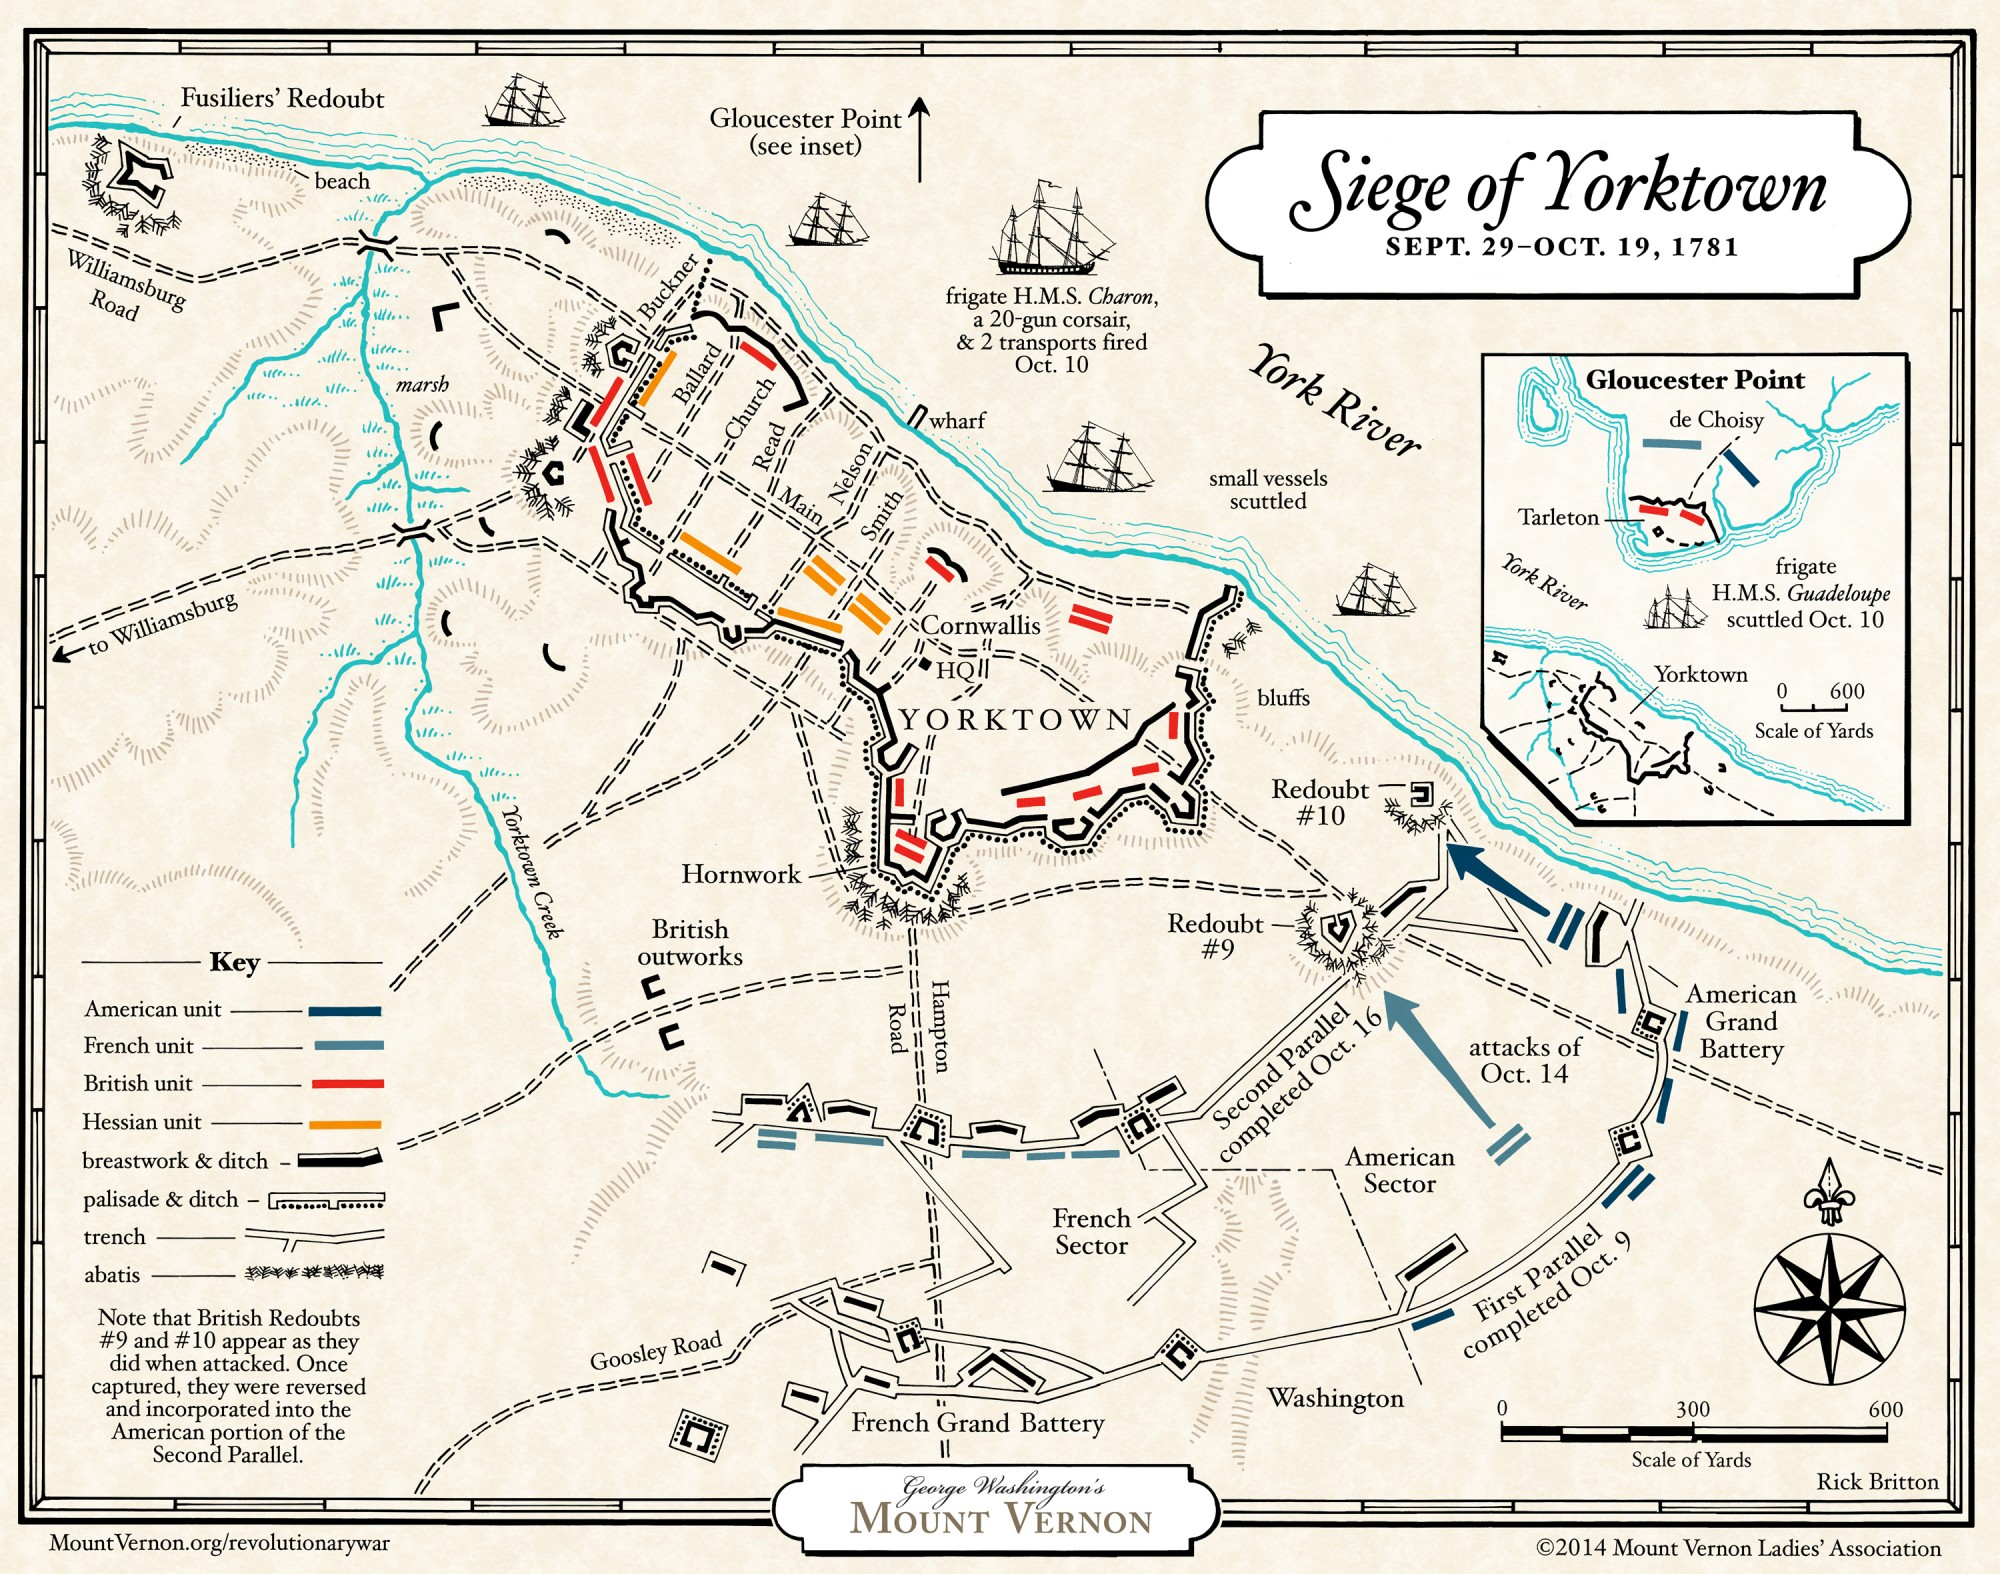 This detailed map from Mount Vernon looks at the the British, Hessian, French, and American positions at Yorktown in October 1781.  The map shows the attacks on Redoubts 9 and 10 - the attacks that led to Cornwallis' surrender.